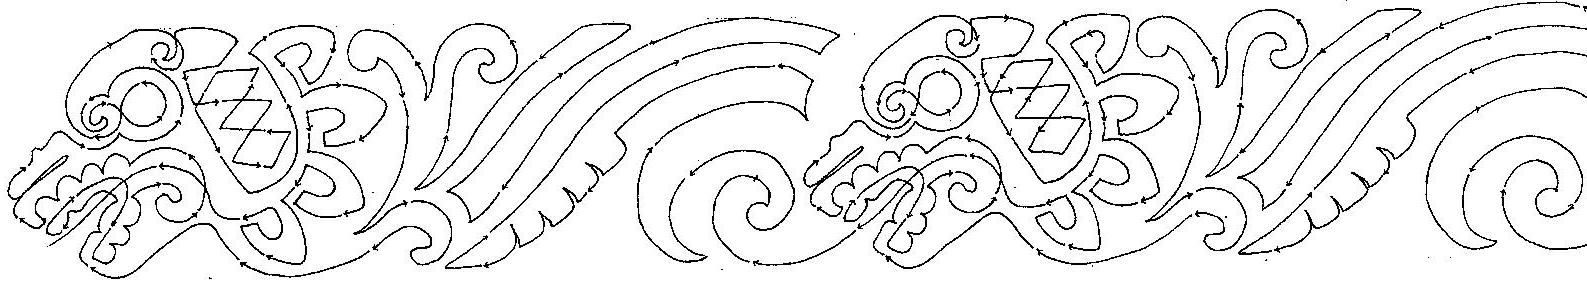 Feathered Serpent Border